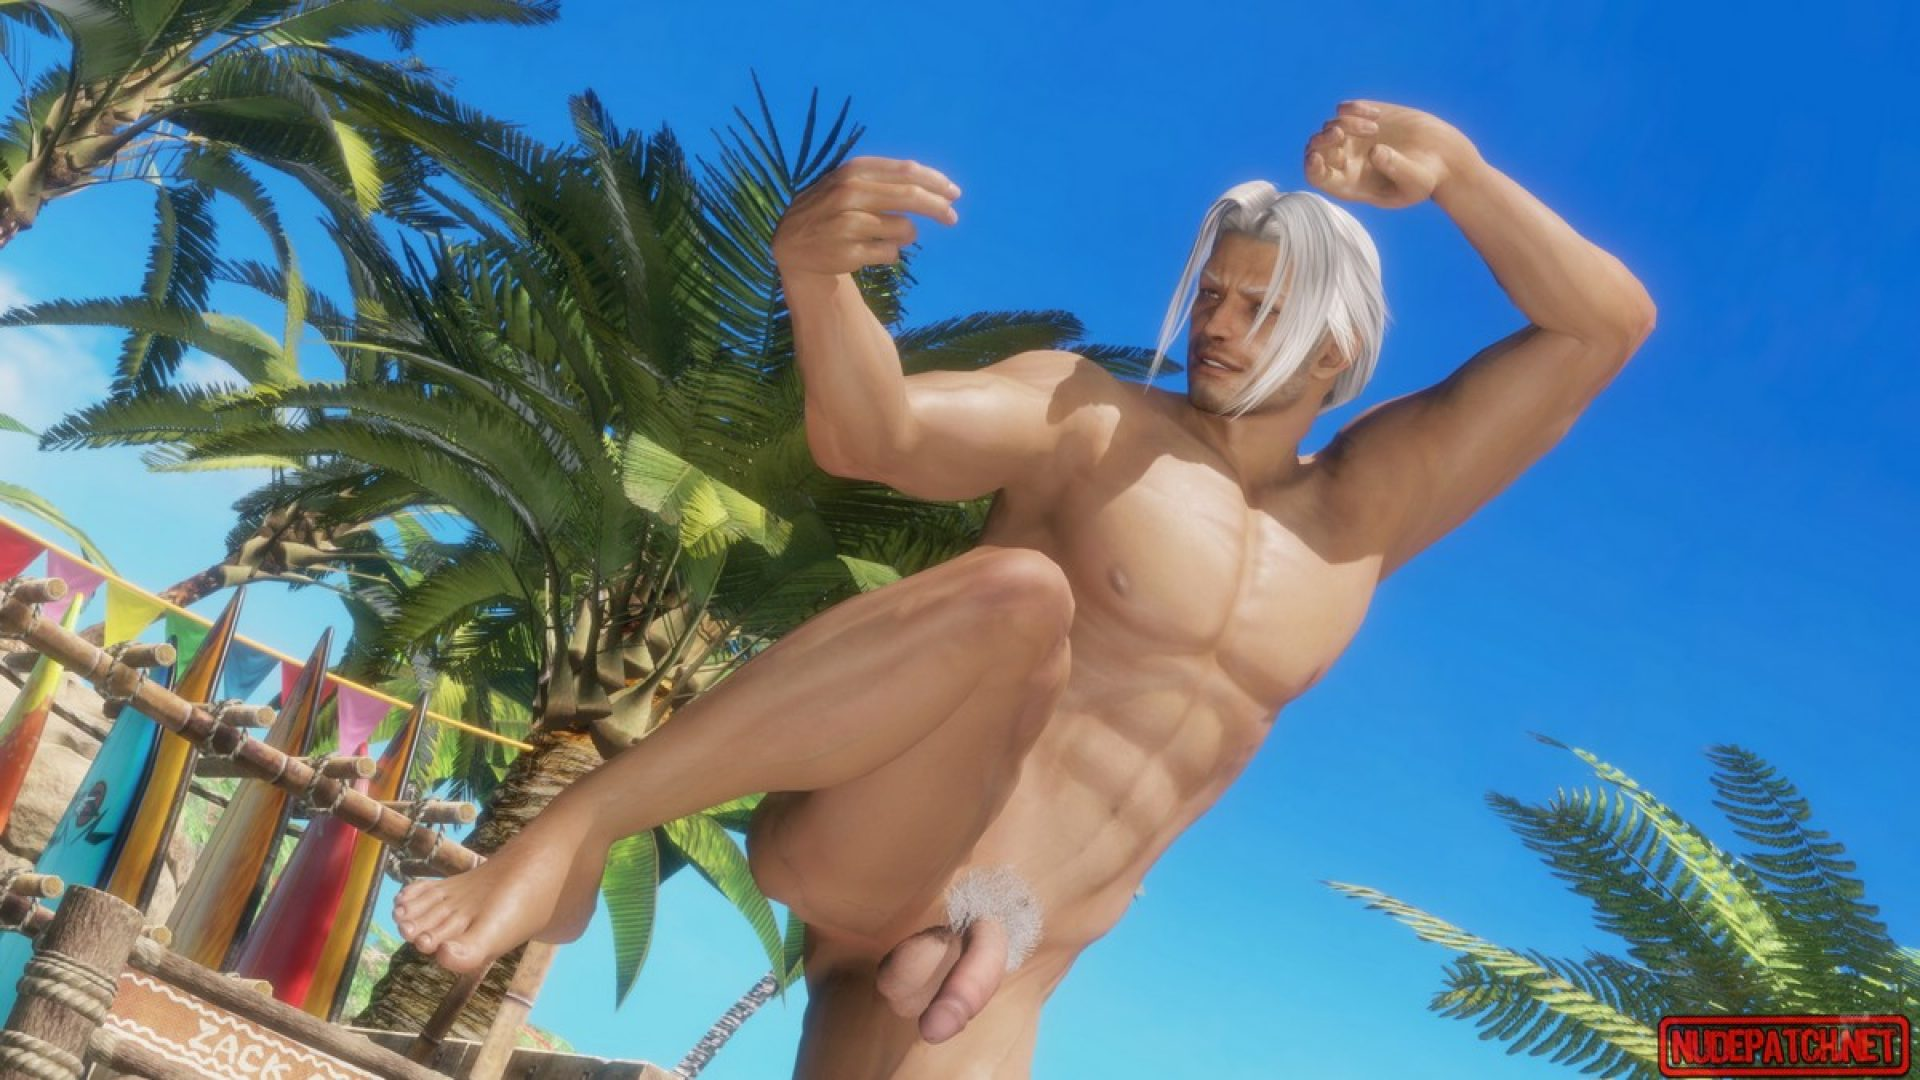 Entertaining mod pics nude doa join. was